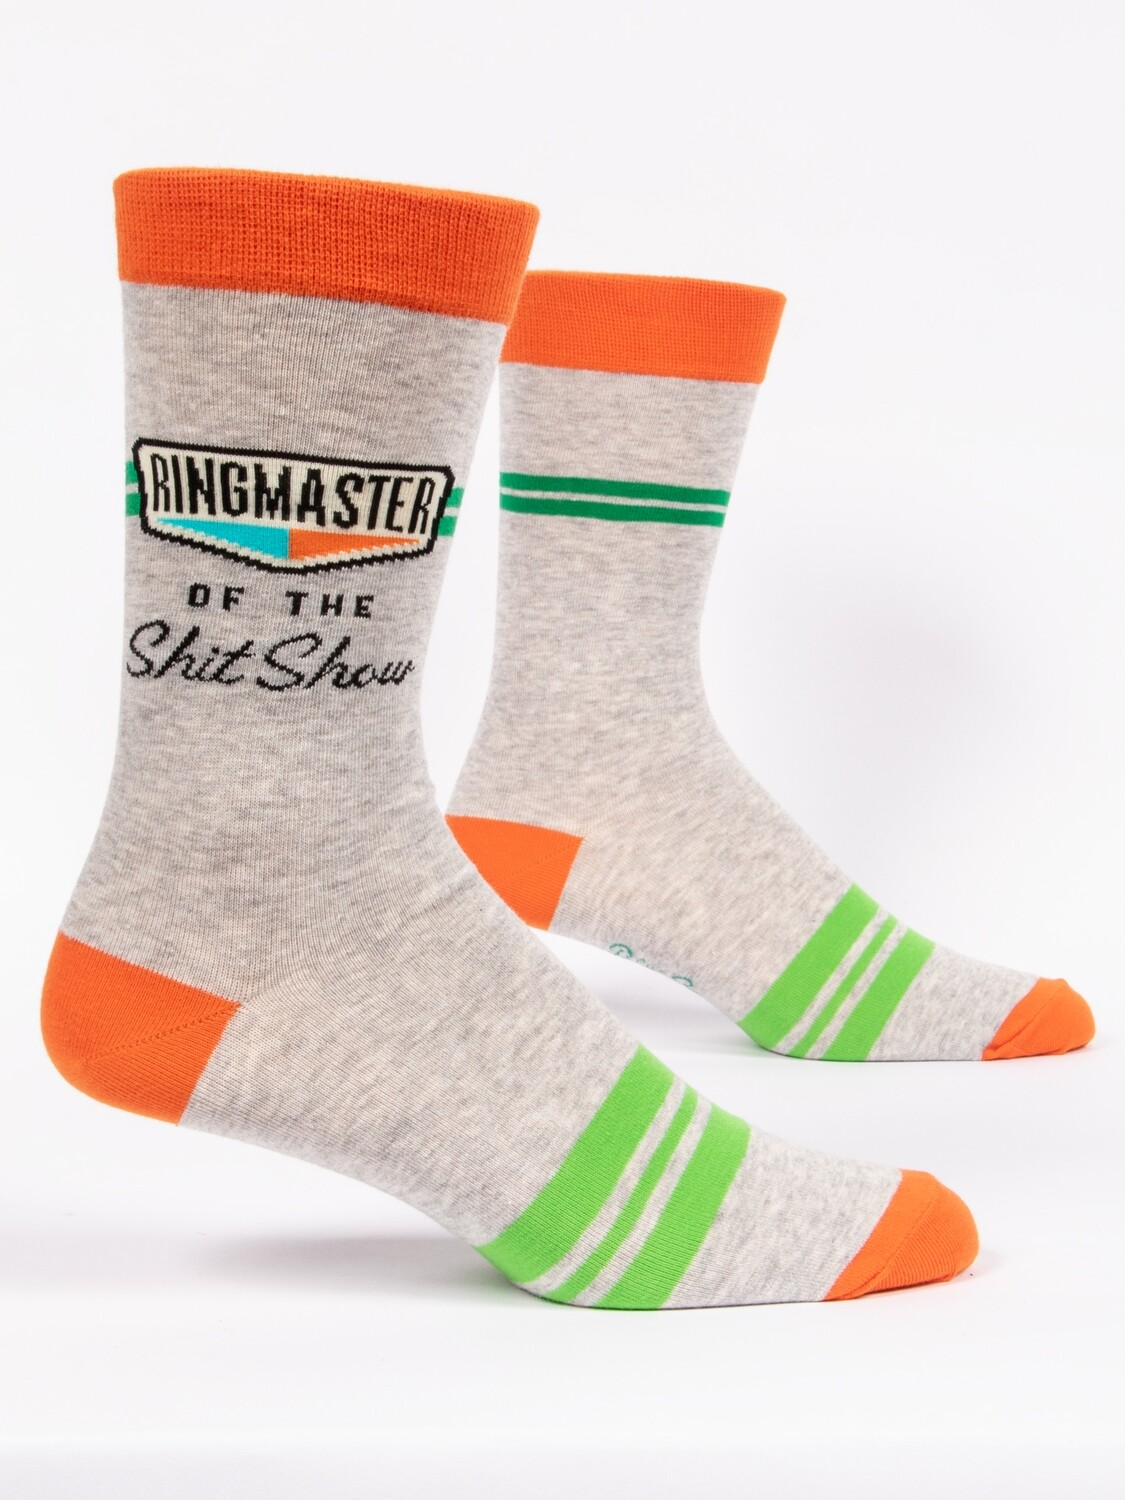 Blue Q Mens Socks - Ringmaster of the Shit Show